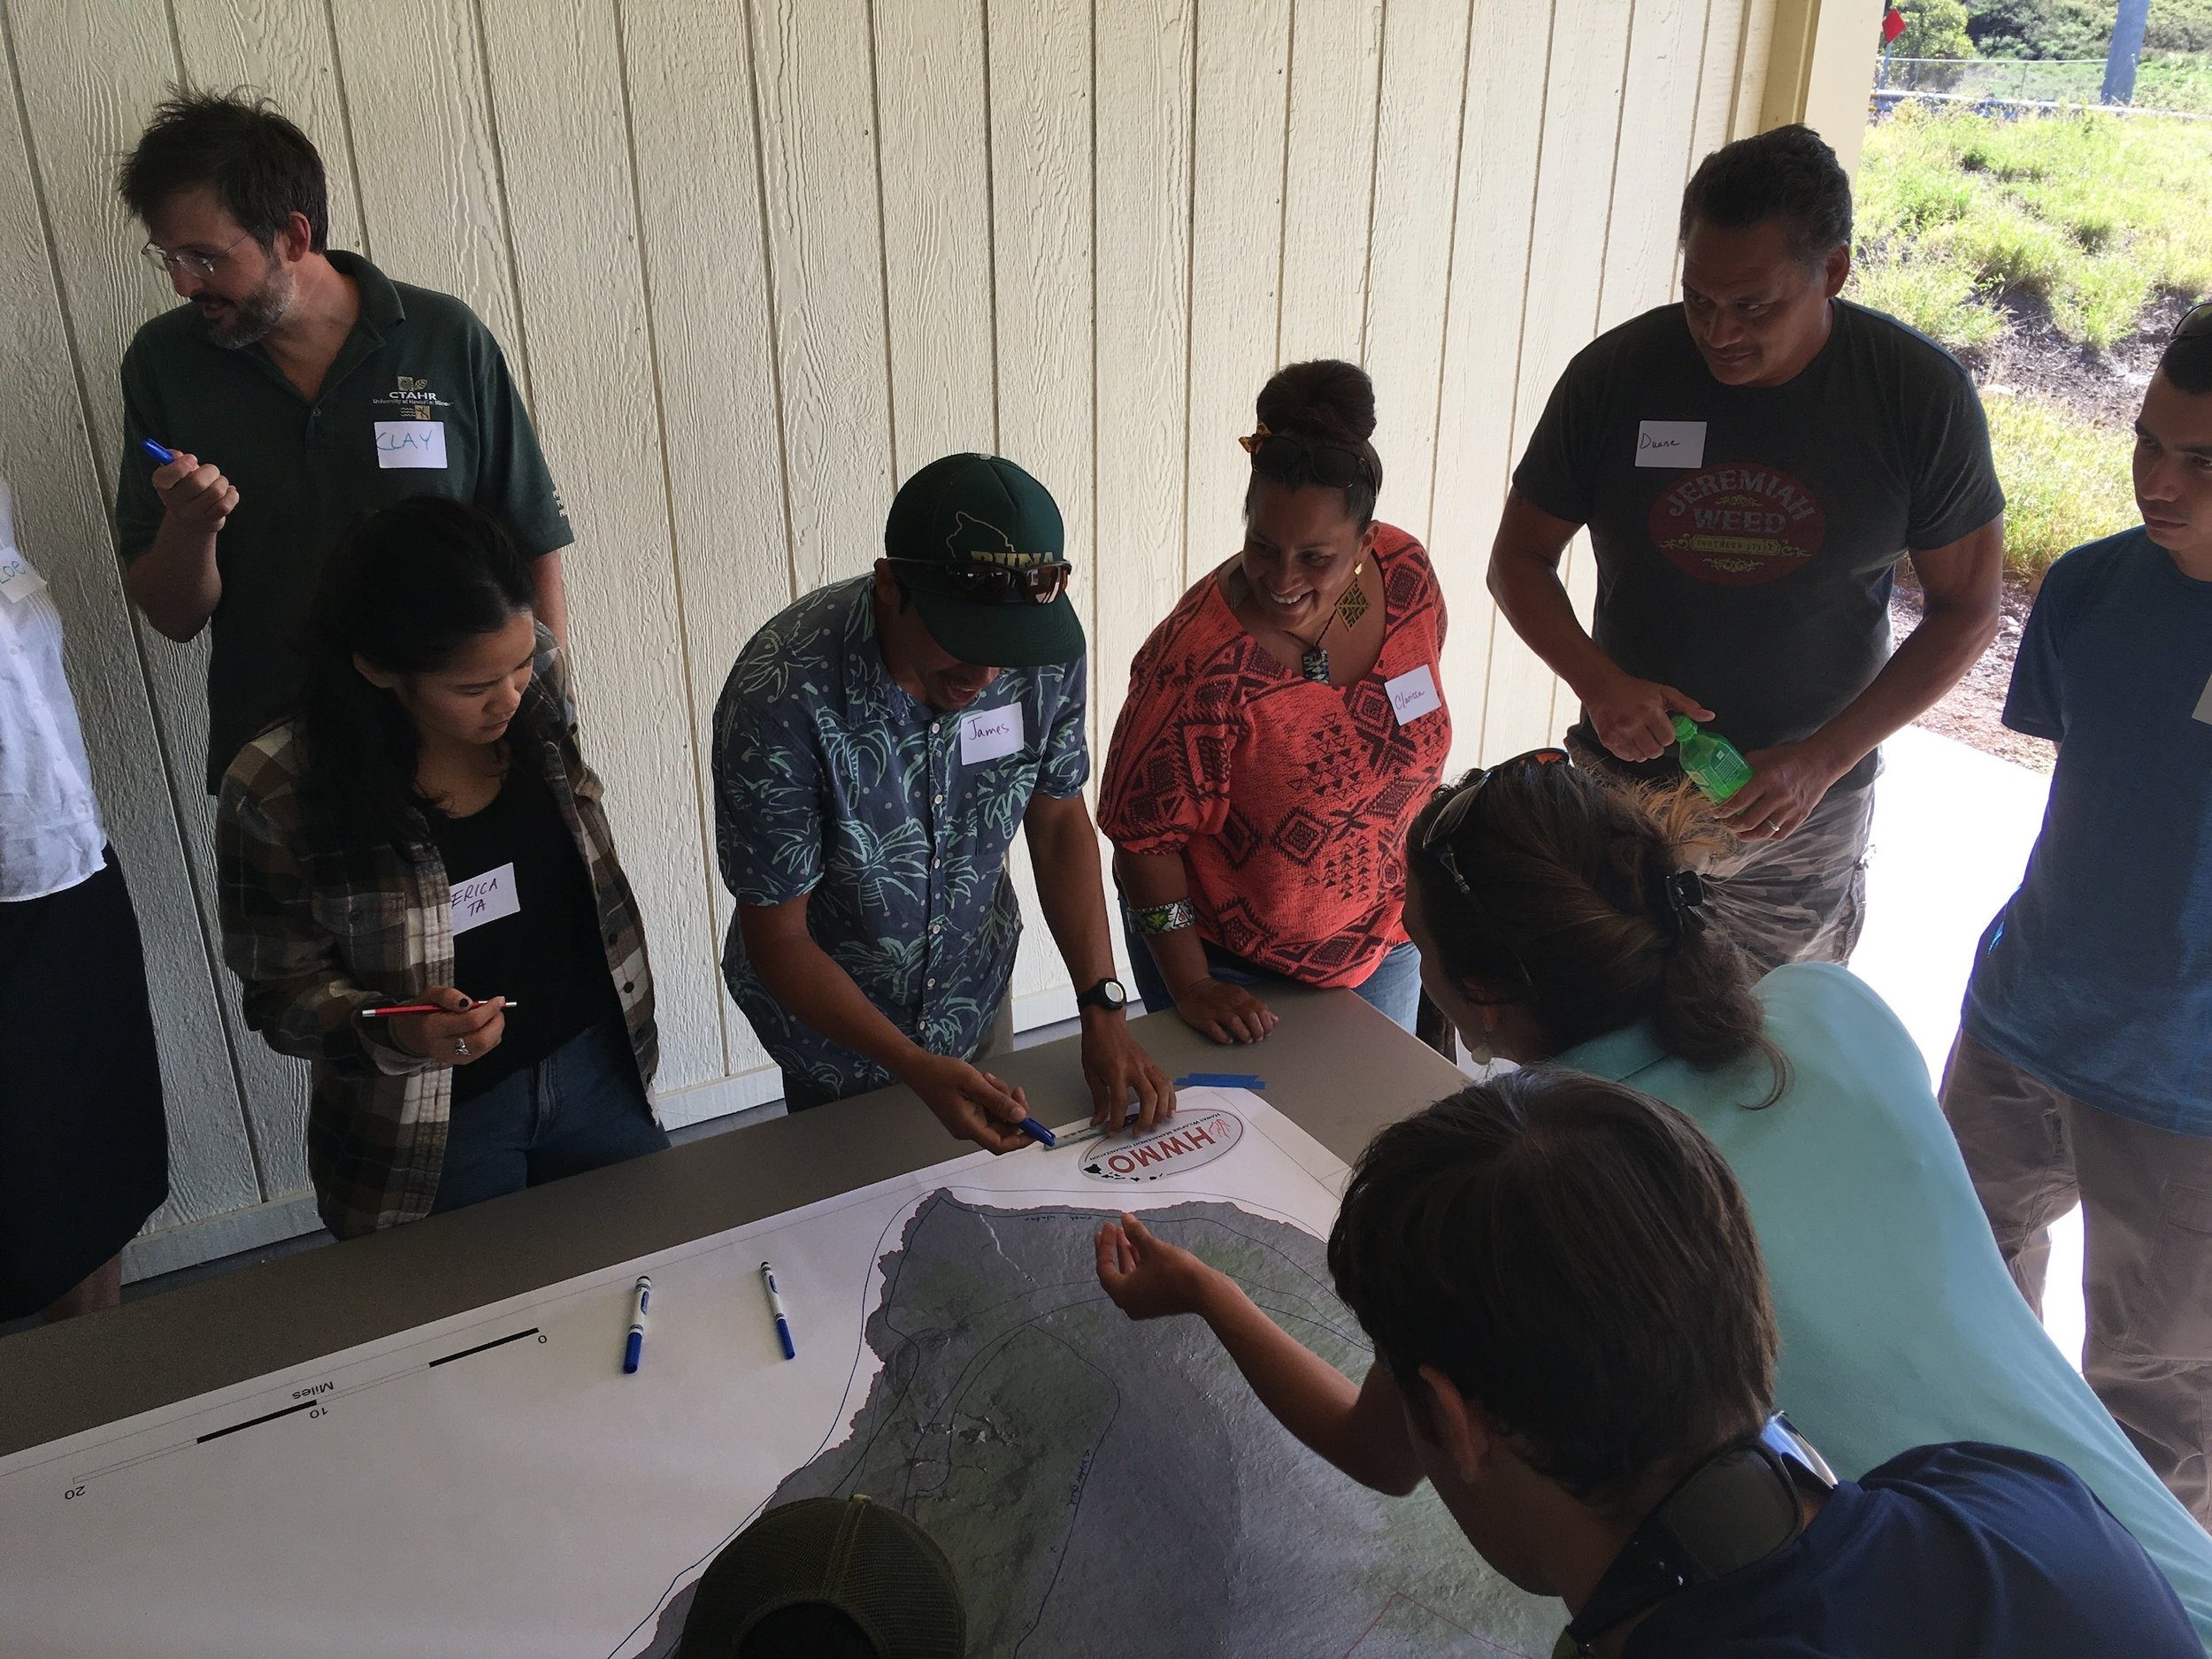 Hawaii Island Kailapa Vegetative Fuels Management Collaborative Action Planning Workshop_2_26_2019_25.jpg